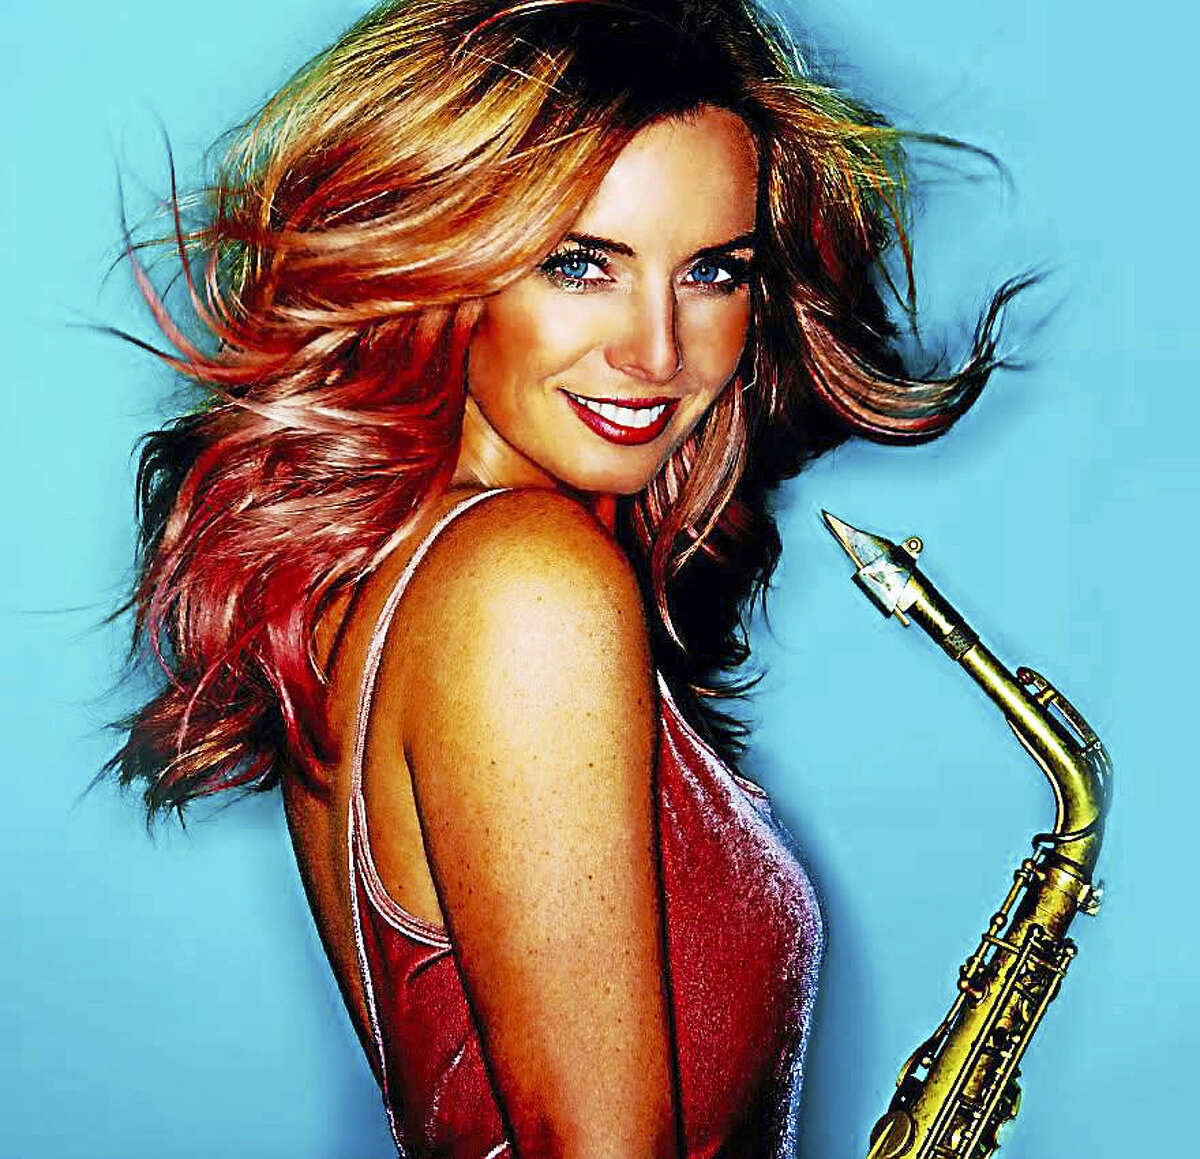 Saxophonist Candy Dulfer is set to perform at the Lyman Center for the Performing Arts Center in New Haven on Friday June 2. Candy is known around the world for her powerful and high energy concerts.